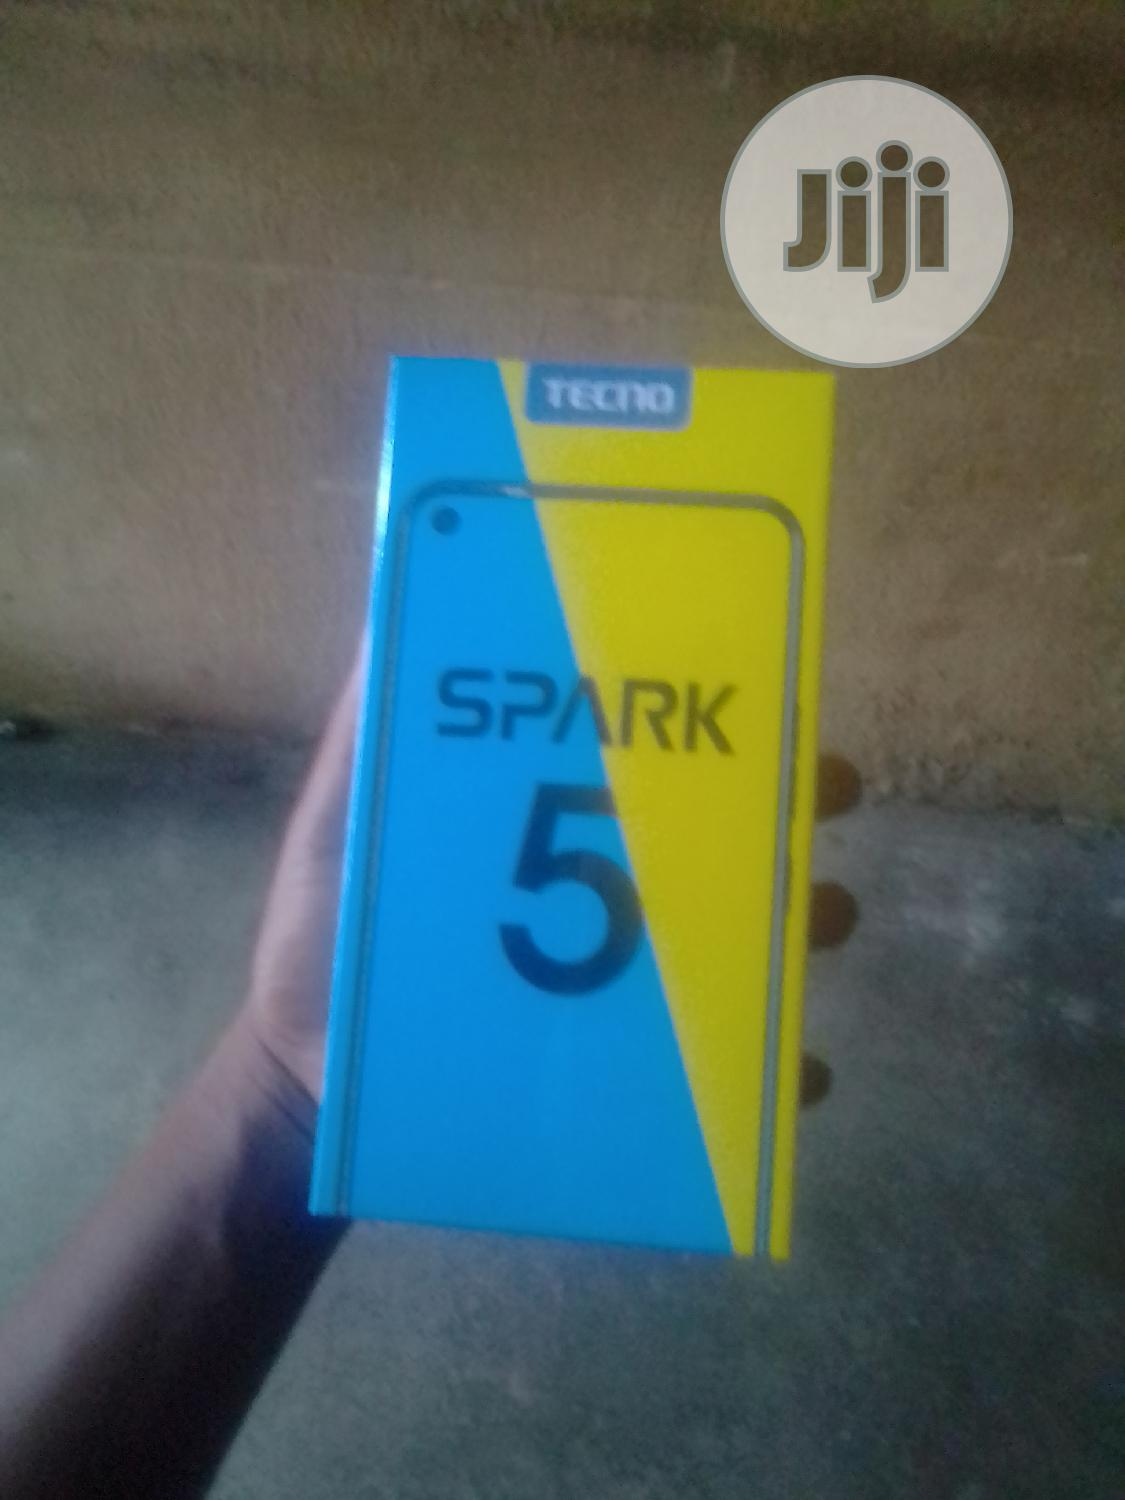 Archive: New Tecno Spark 5 32 GB